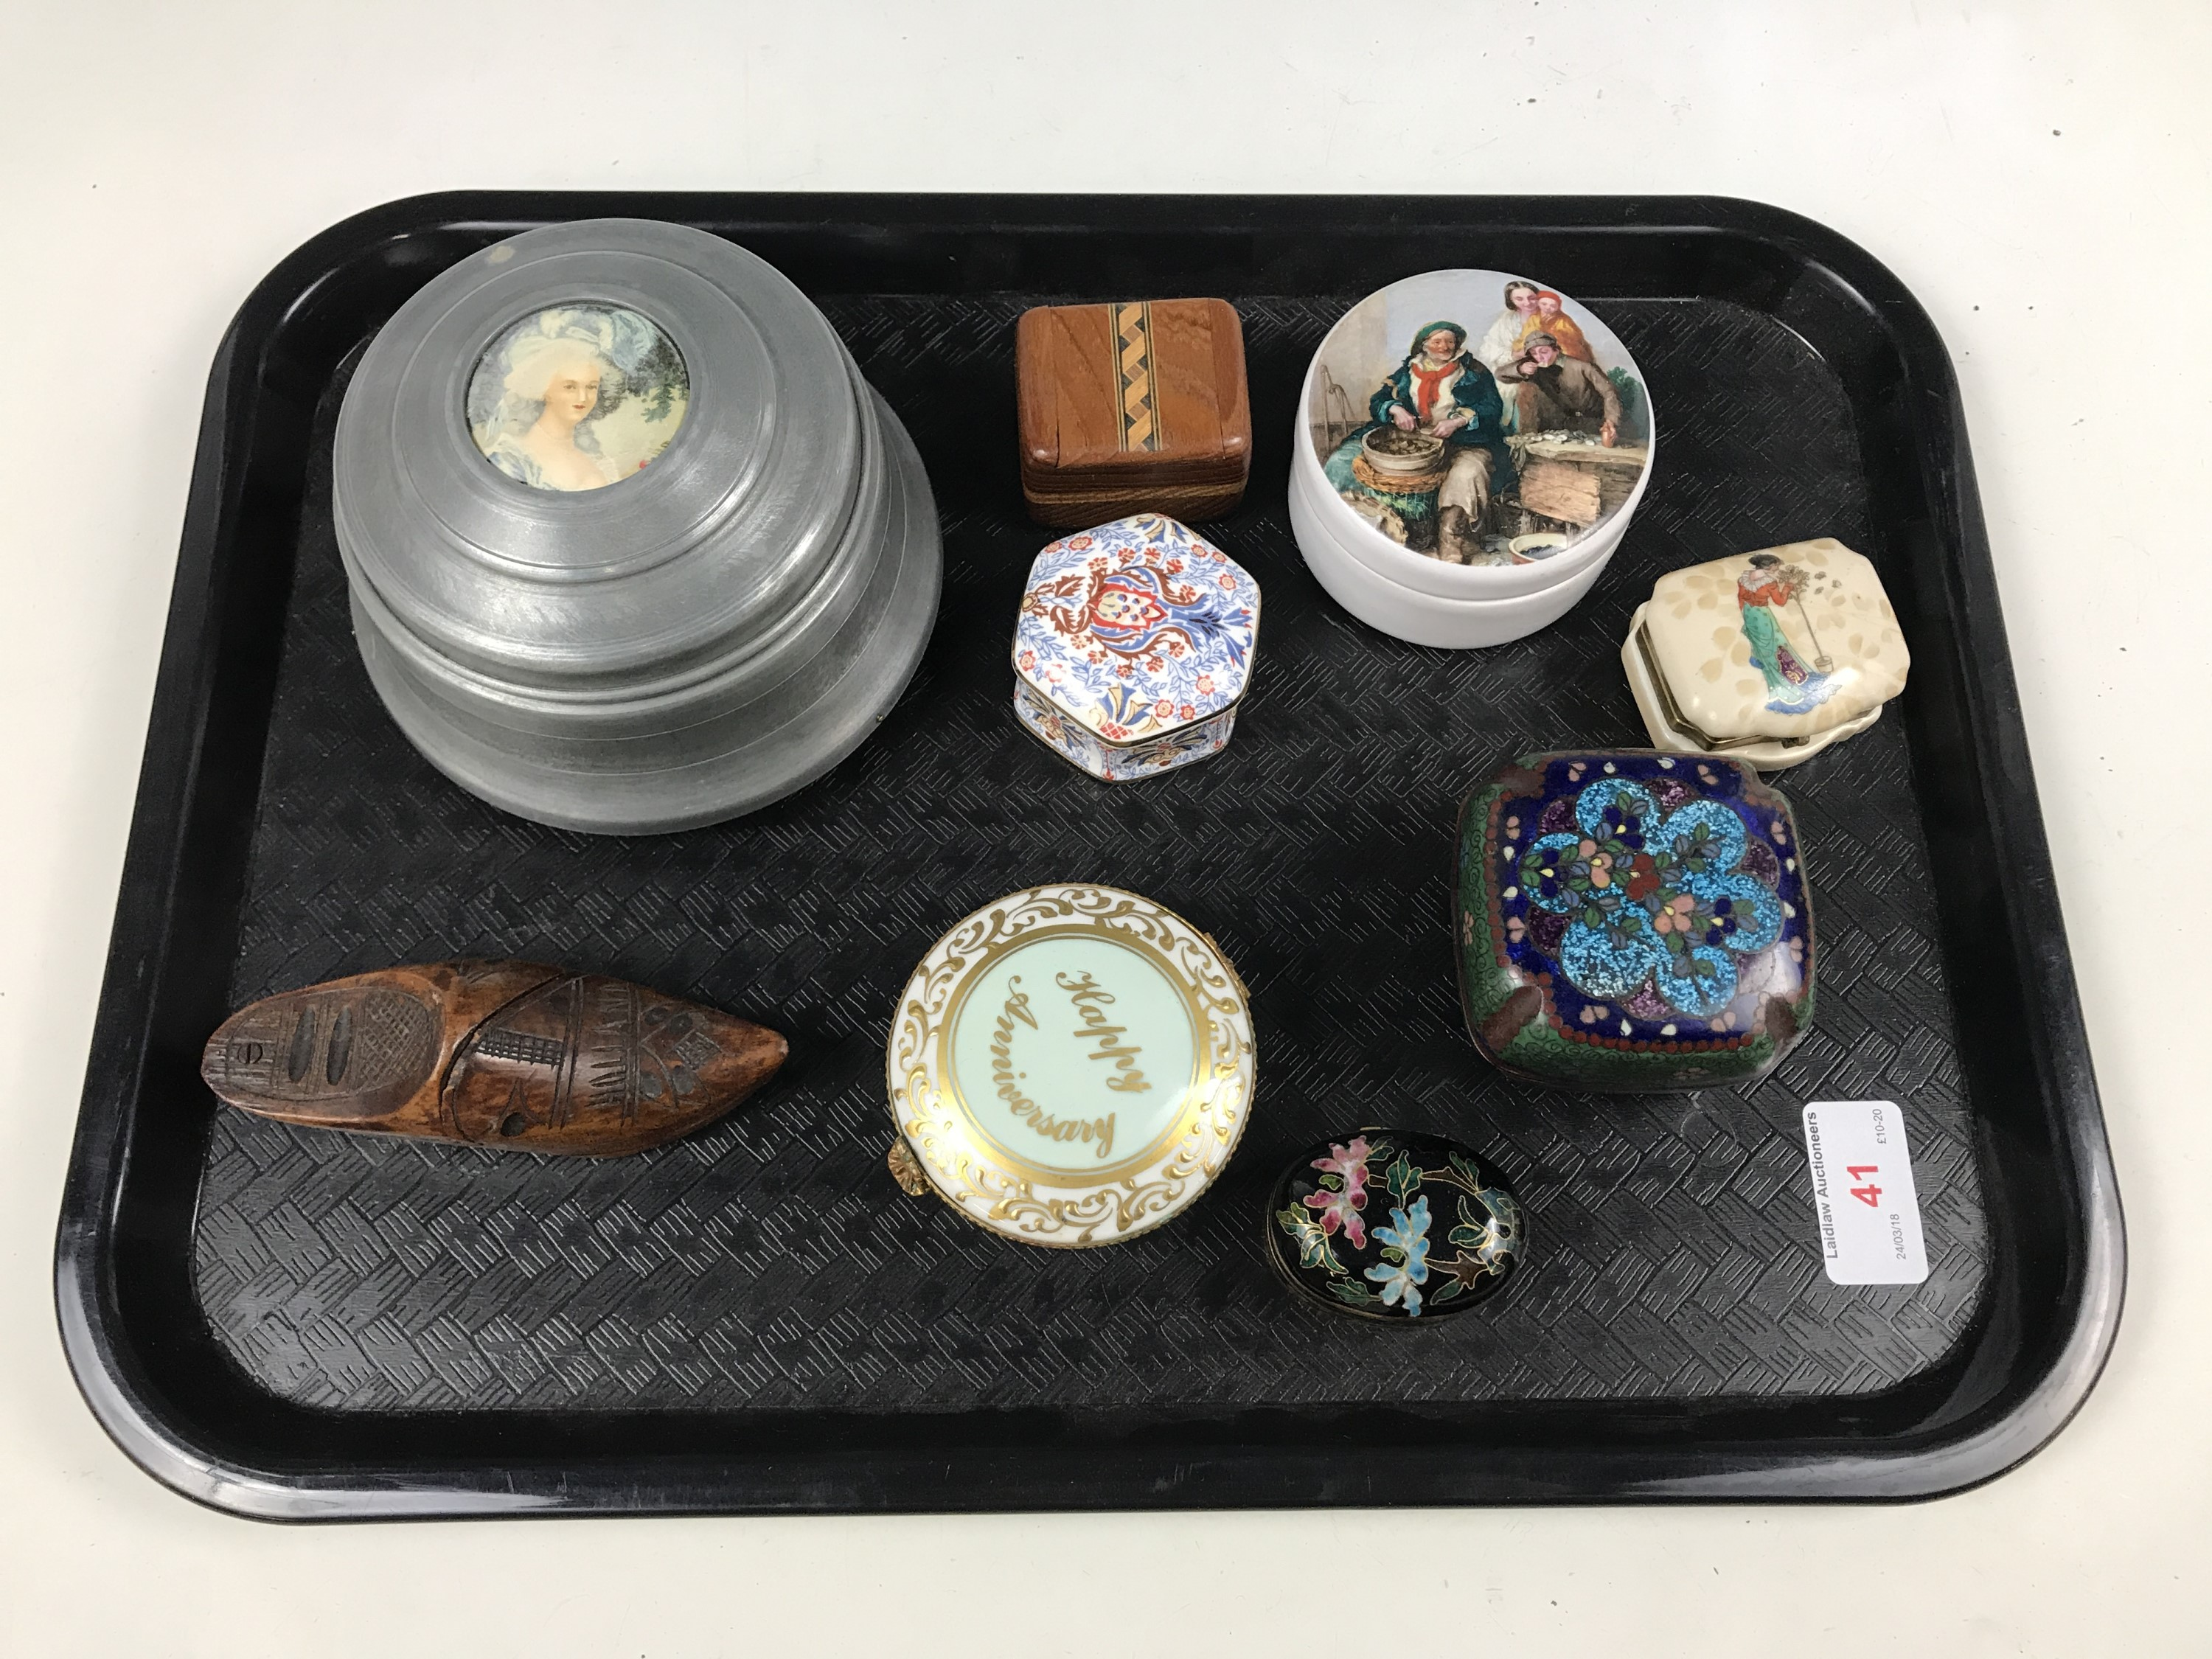 Lot 41 - A musical pewter box together with other trinket and pill boxes including cloisonné and Limoges